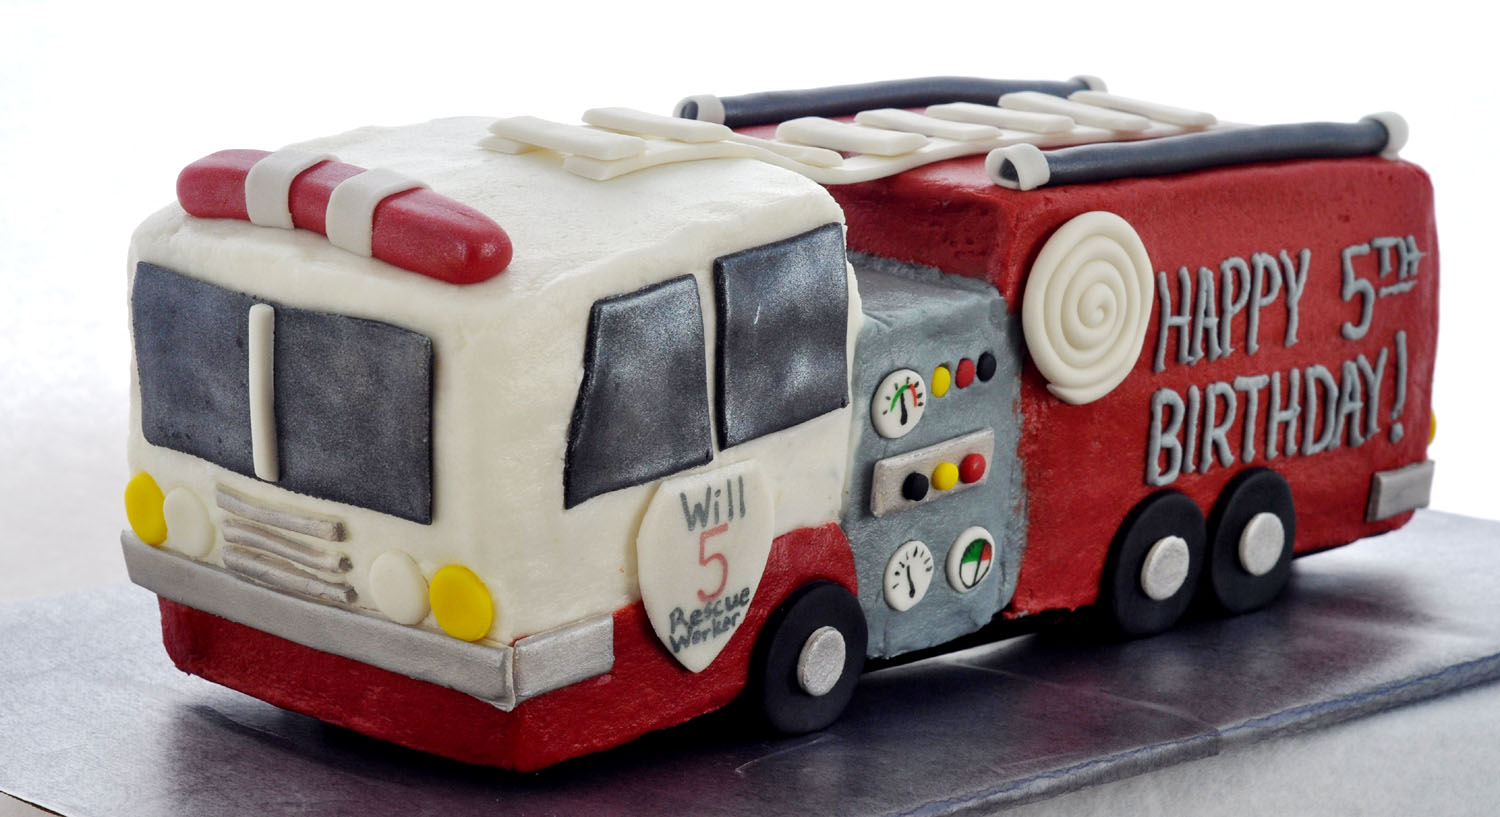 Beki Cooks Cake Blog How to Make a Firetruck Cake